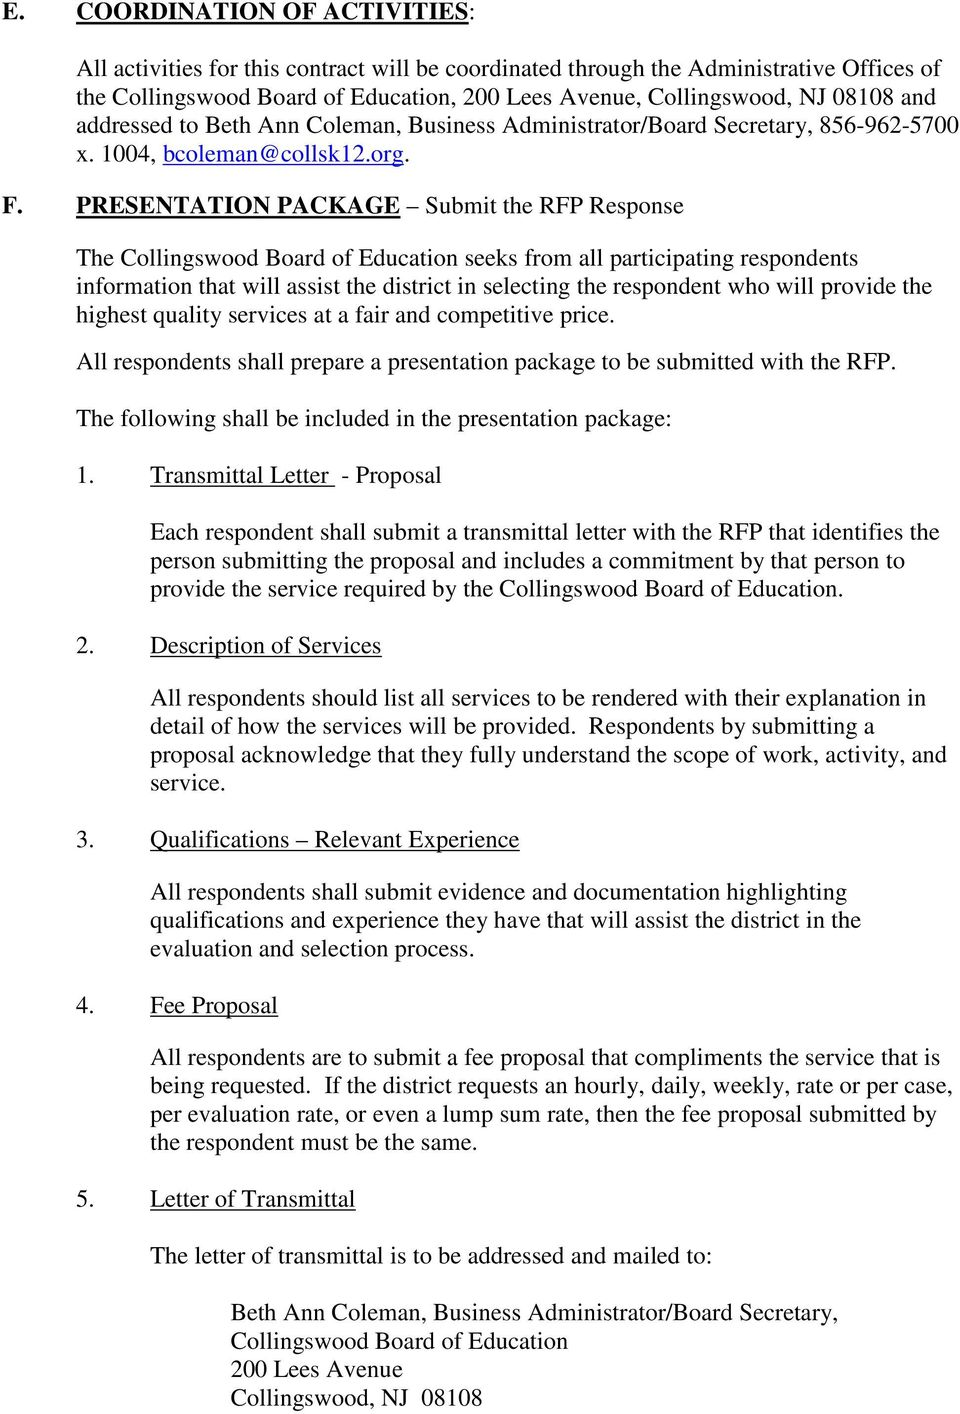 PRESENTATION PACKAGE Submit the RFP Response The Collingswood Board of Education seeks from all participating respondents information that will assist the district in selecting the respondent who